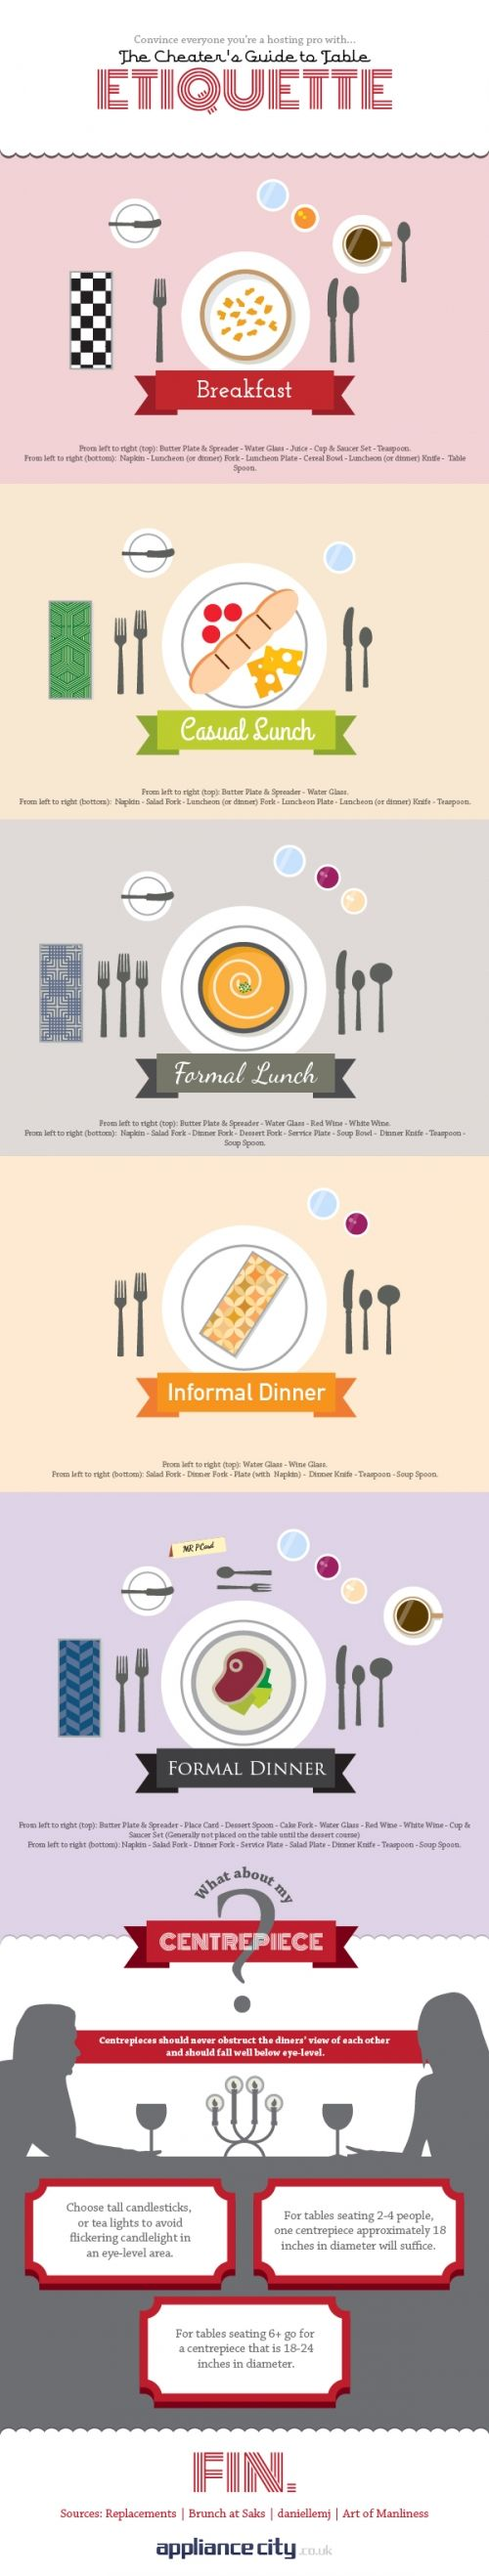 best 25+ table etiquette ideas only on pinterest | proper table